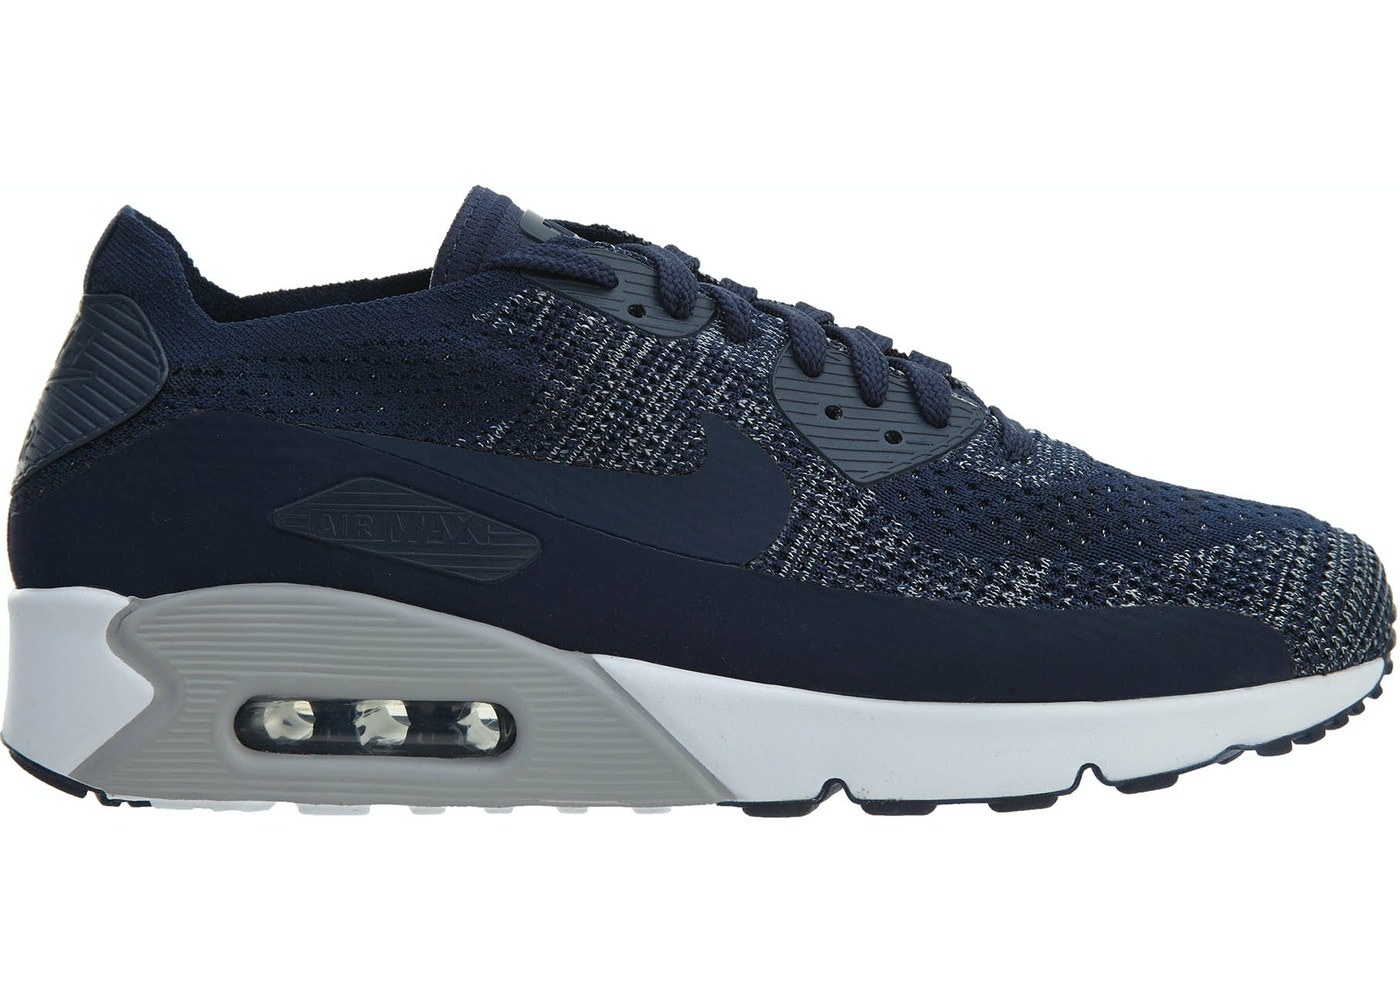 low priced 30b79 6a46c Air Max 90 Ultra 2.0 Flyknit College Navy College Navy